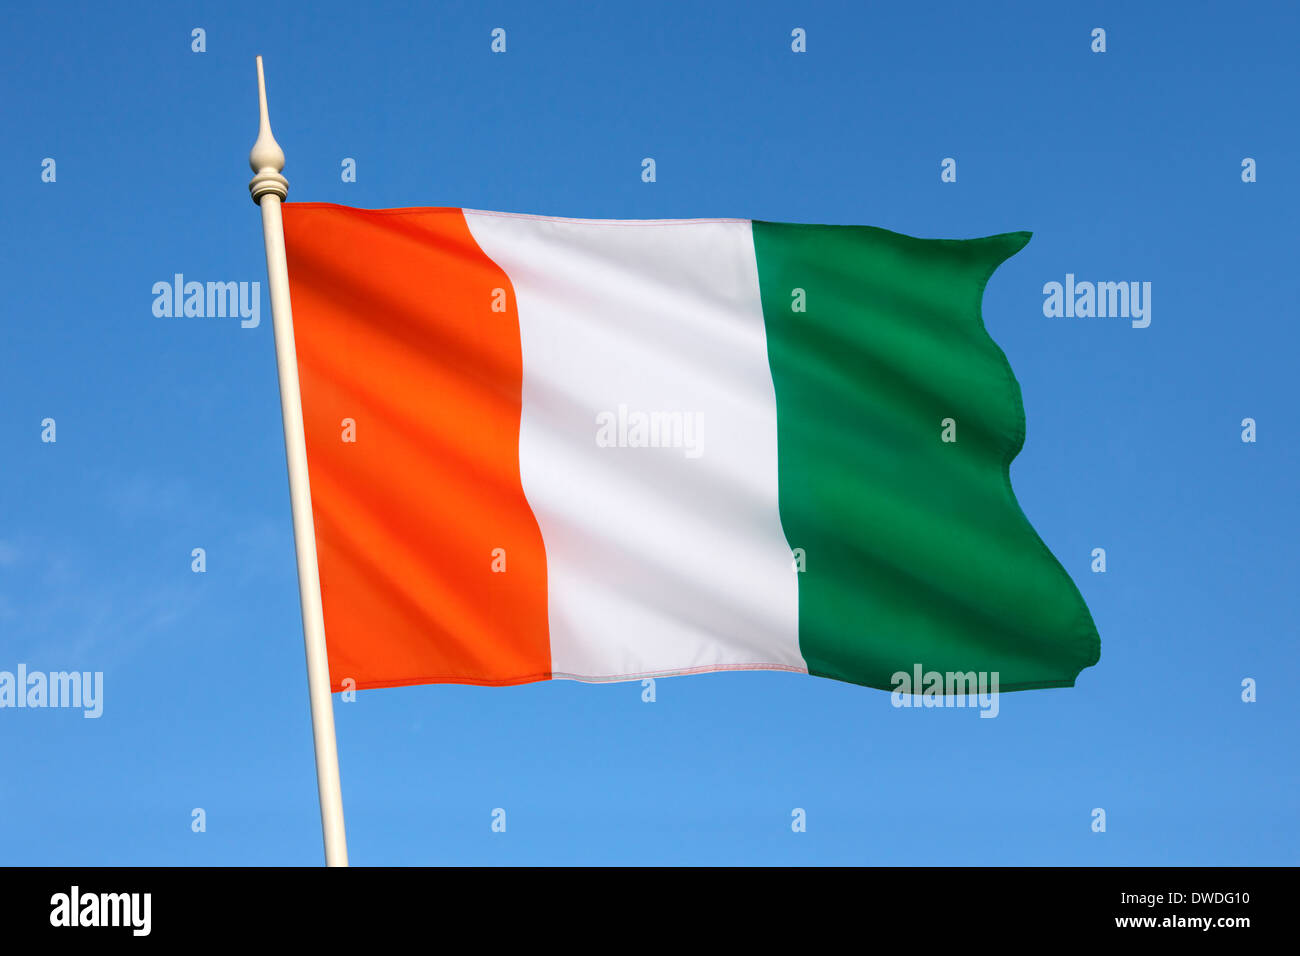 Flag of Ivory Coast or Cote d'Ivoire - Stock Image